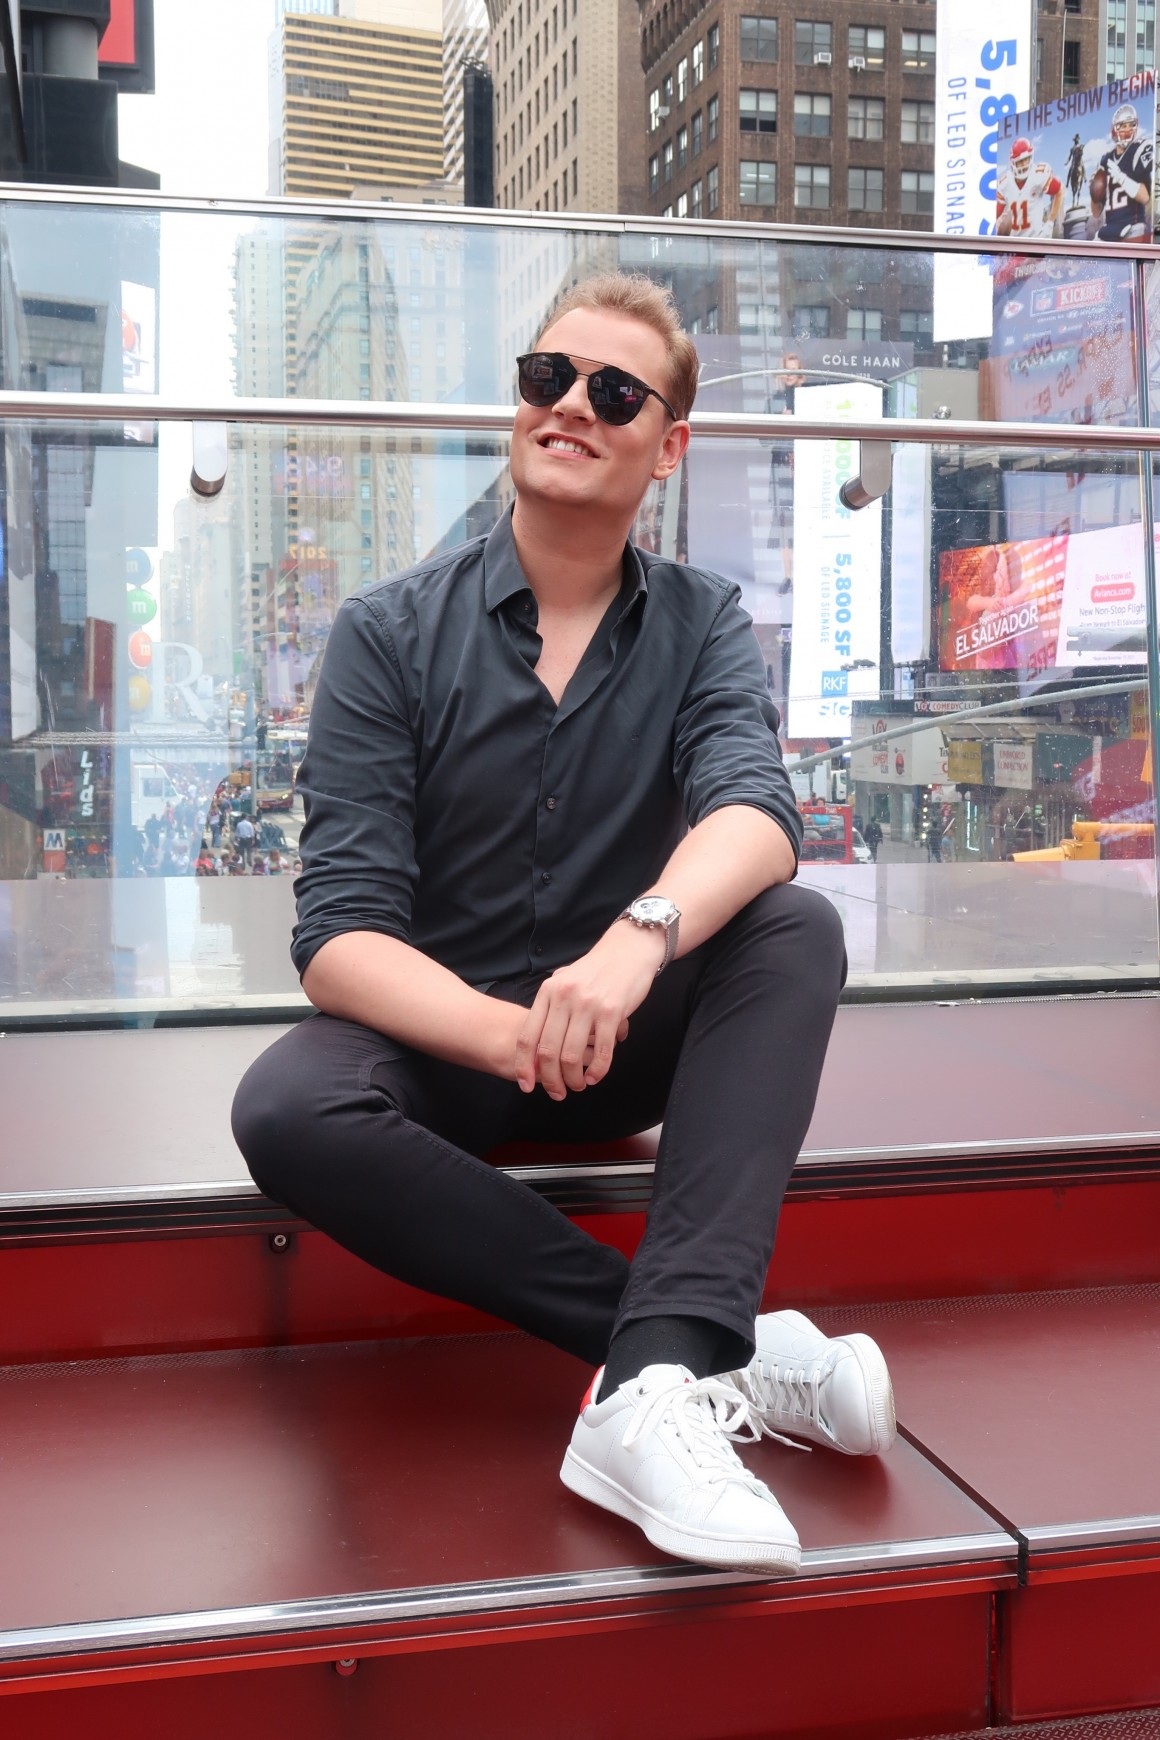 New York City Travel Guide JustKVN menswear and lifestyle blog